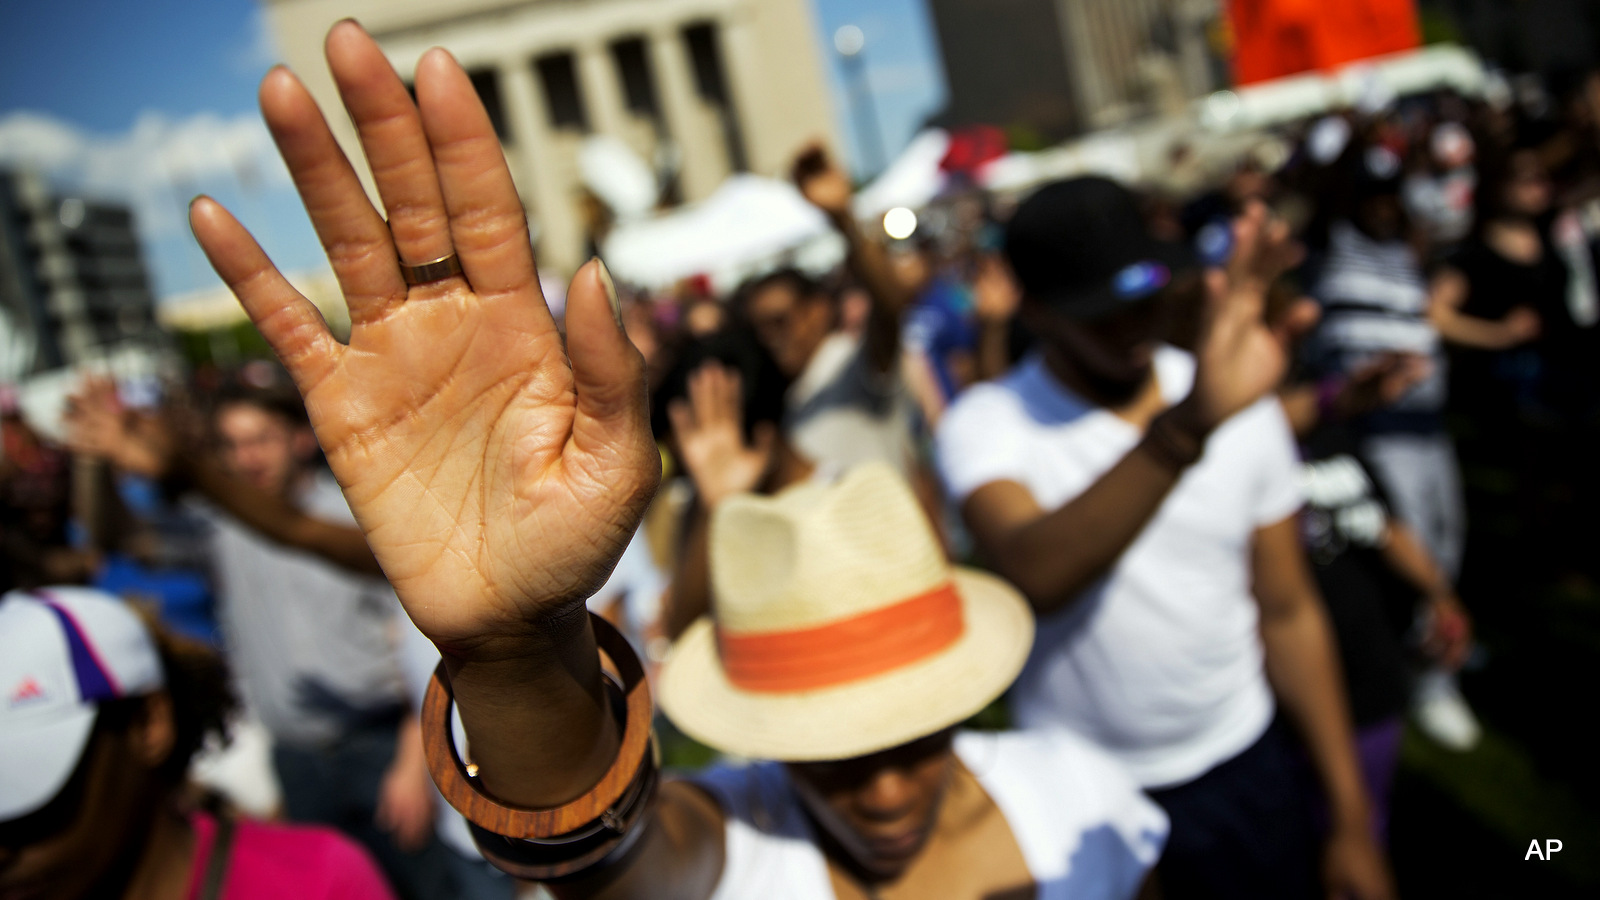 """People pray during a rally at City Hall, Sunday, May 3, 2015, in Baltimore. Hundreds of jubilant people prayed and chanted for justice days after the city's top prosecutor charged six officers involved in Freddie Gray's arrest. Gov. Larry Hogan has called for a statewide """"Day Of Prayer And Peace"""" on Sunday after civil unrest rocked Baltimore."""